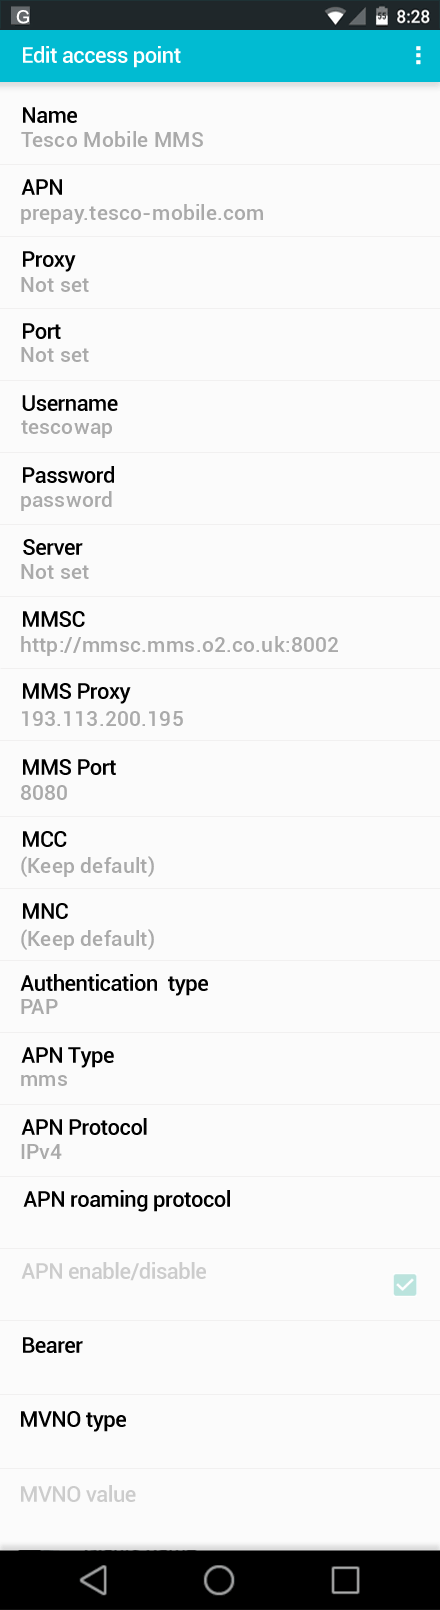 Tesco Mobile MMS APN settings for Android screenshot